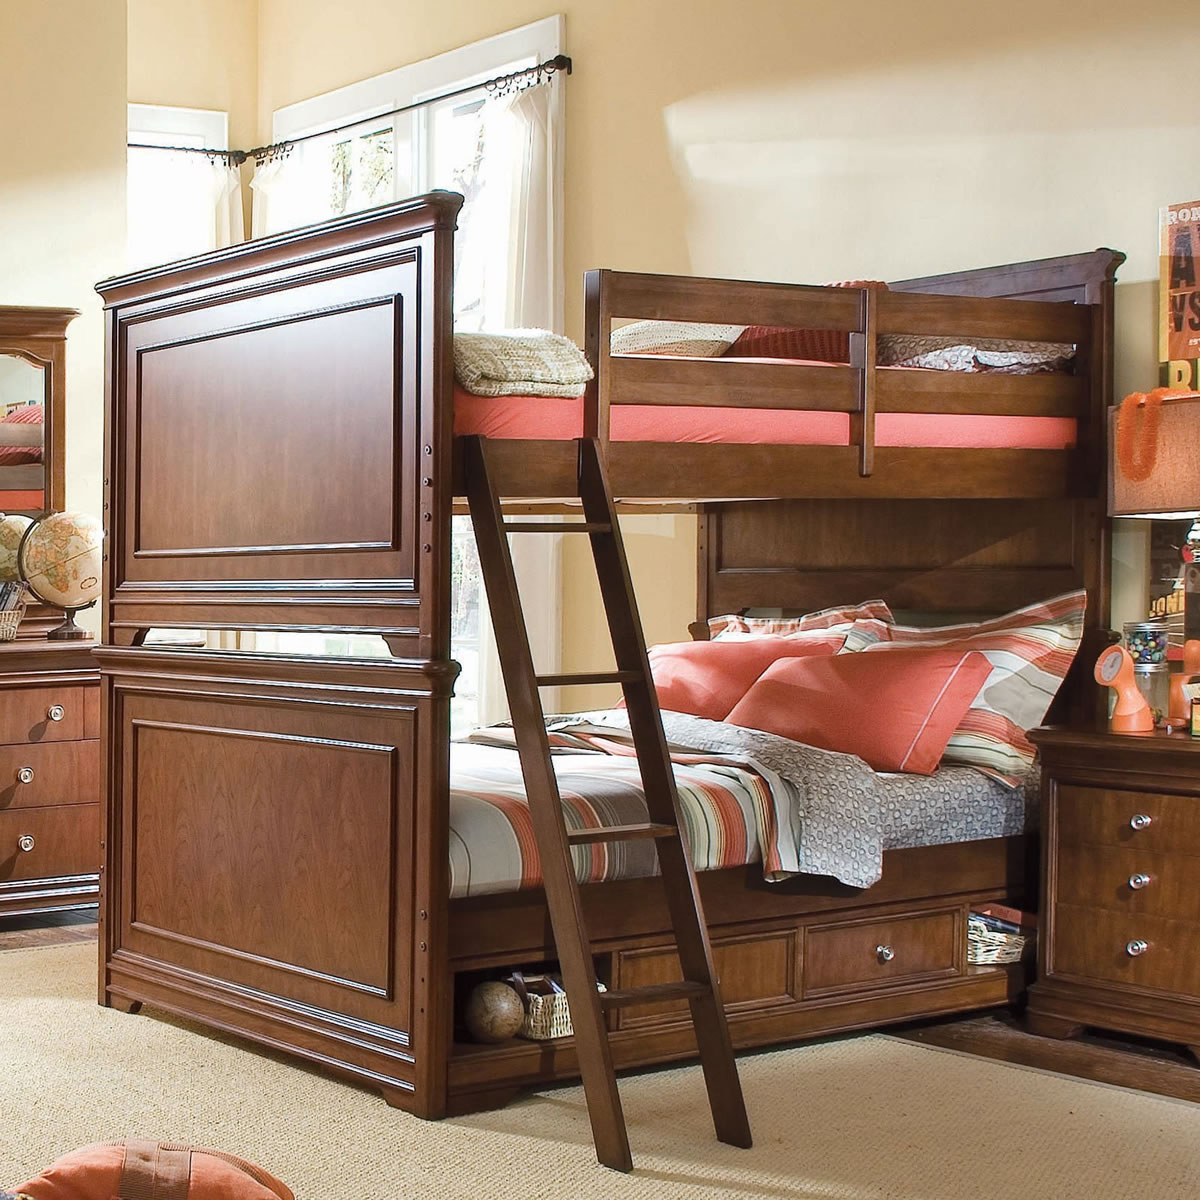 Lea Furniture Elite Collections Of Bunk Beds And Loft Beds